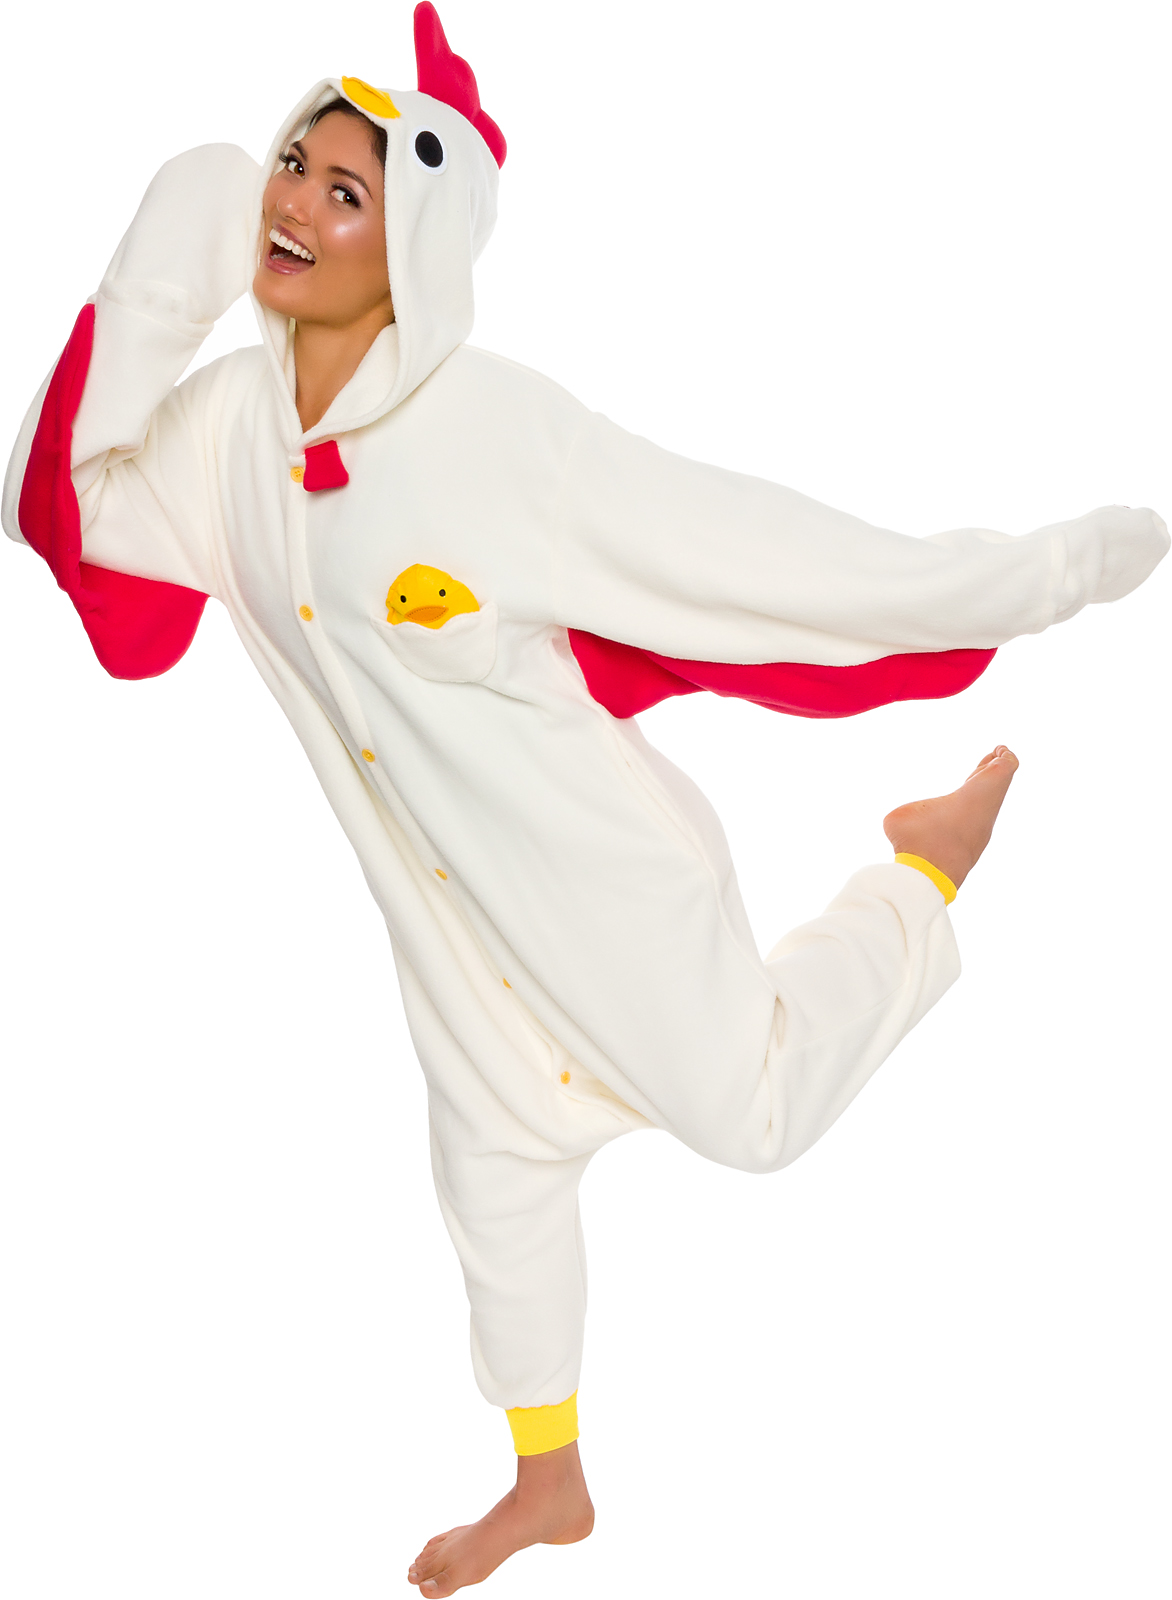 8f7e8e8766 Details about SILVER LILLY Unisex Adult Plush Chicken Animal Cosplay  Costume Pajamas